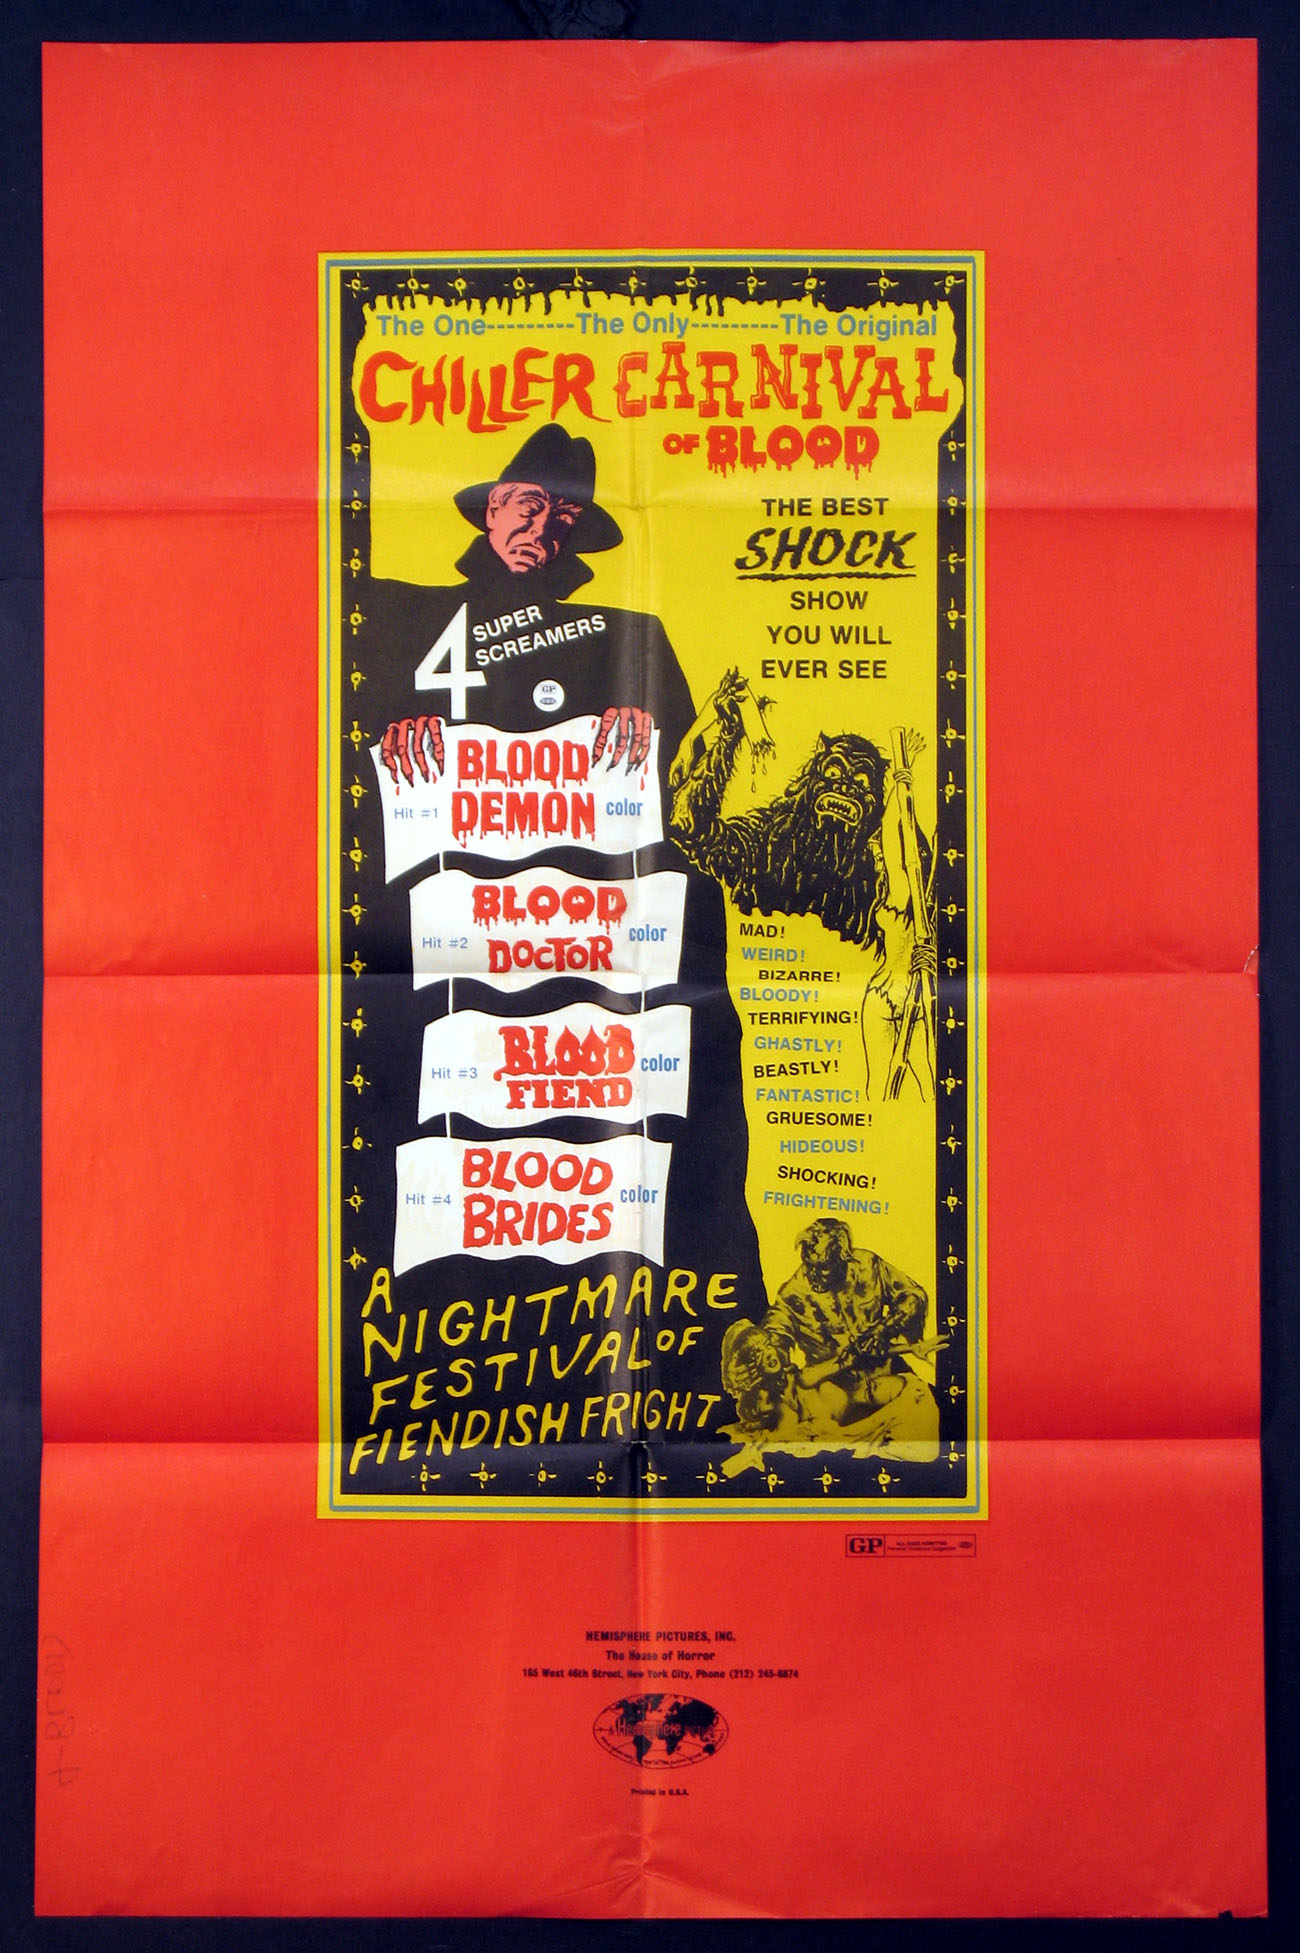 CHILLER CARNIVAL OF BLOOD @ FilmPosters.com